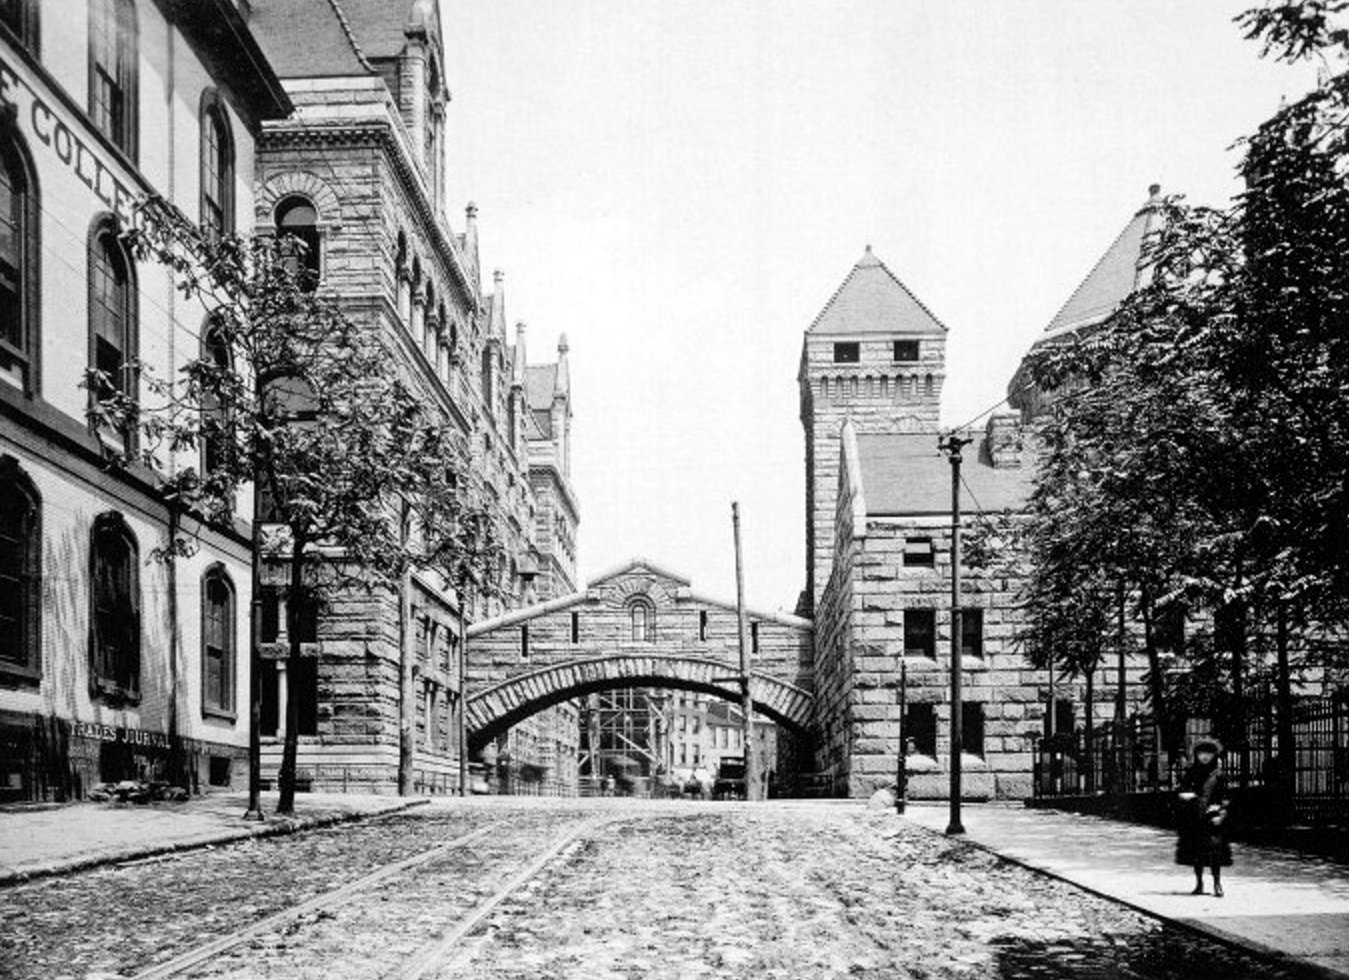 Bridge of Sighs on Ross Street where it crosses Forbes Ave in 1895